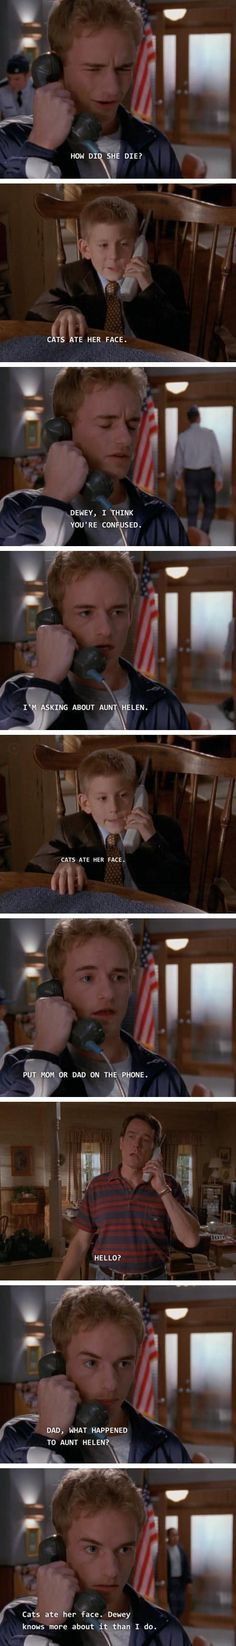 Funny screencaps | from your favourite movies & tv shows